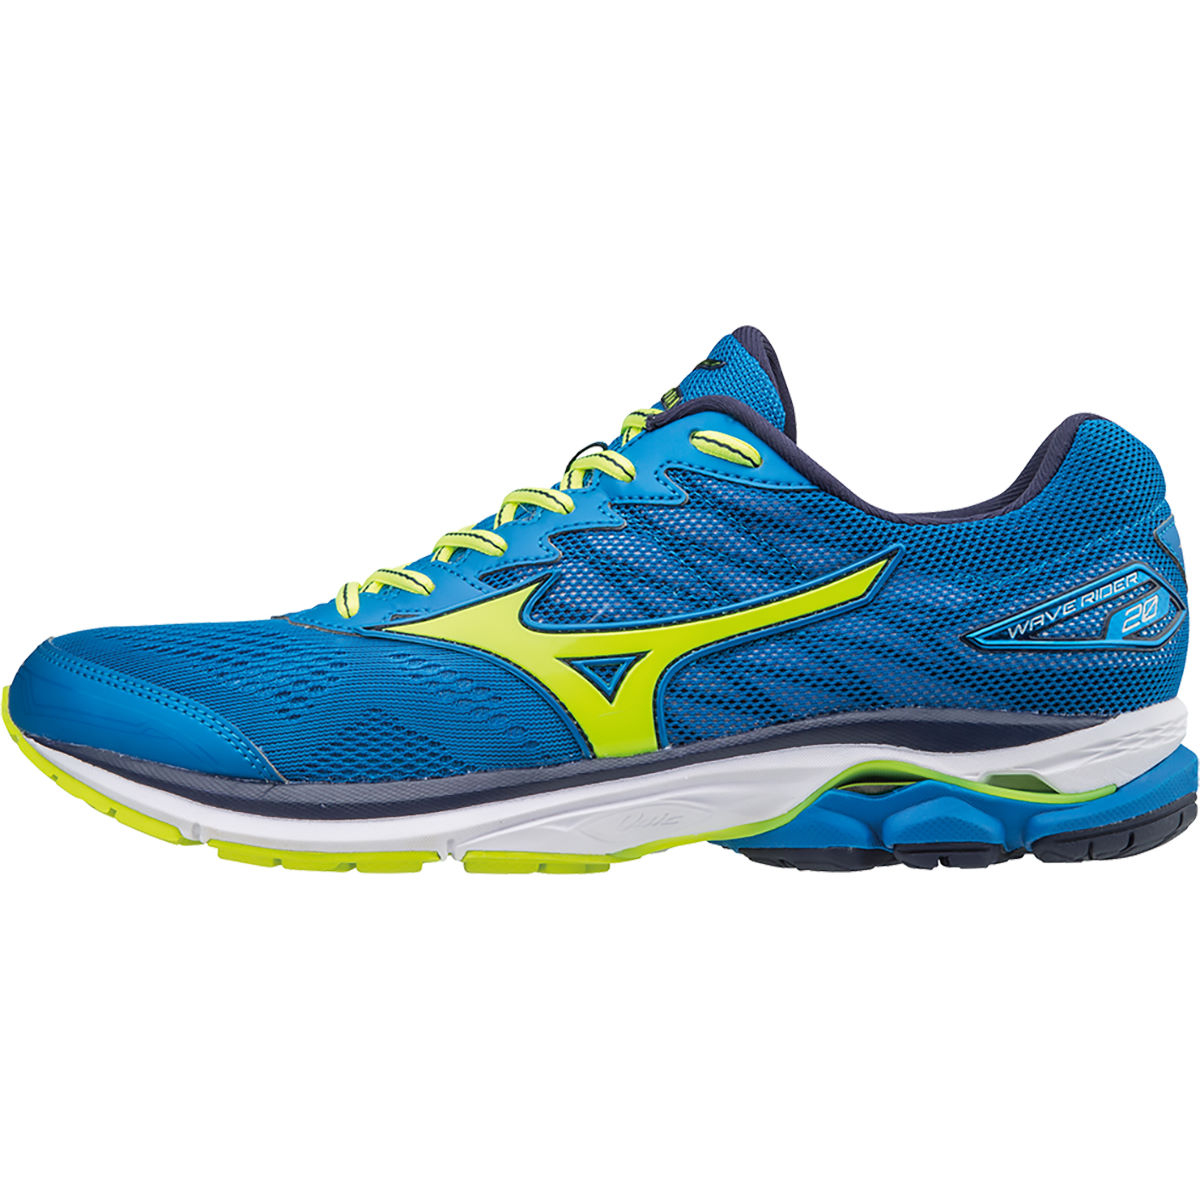 What Running Mizuno Shoe